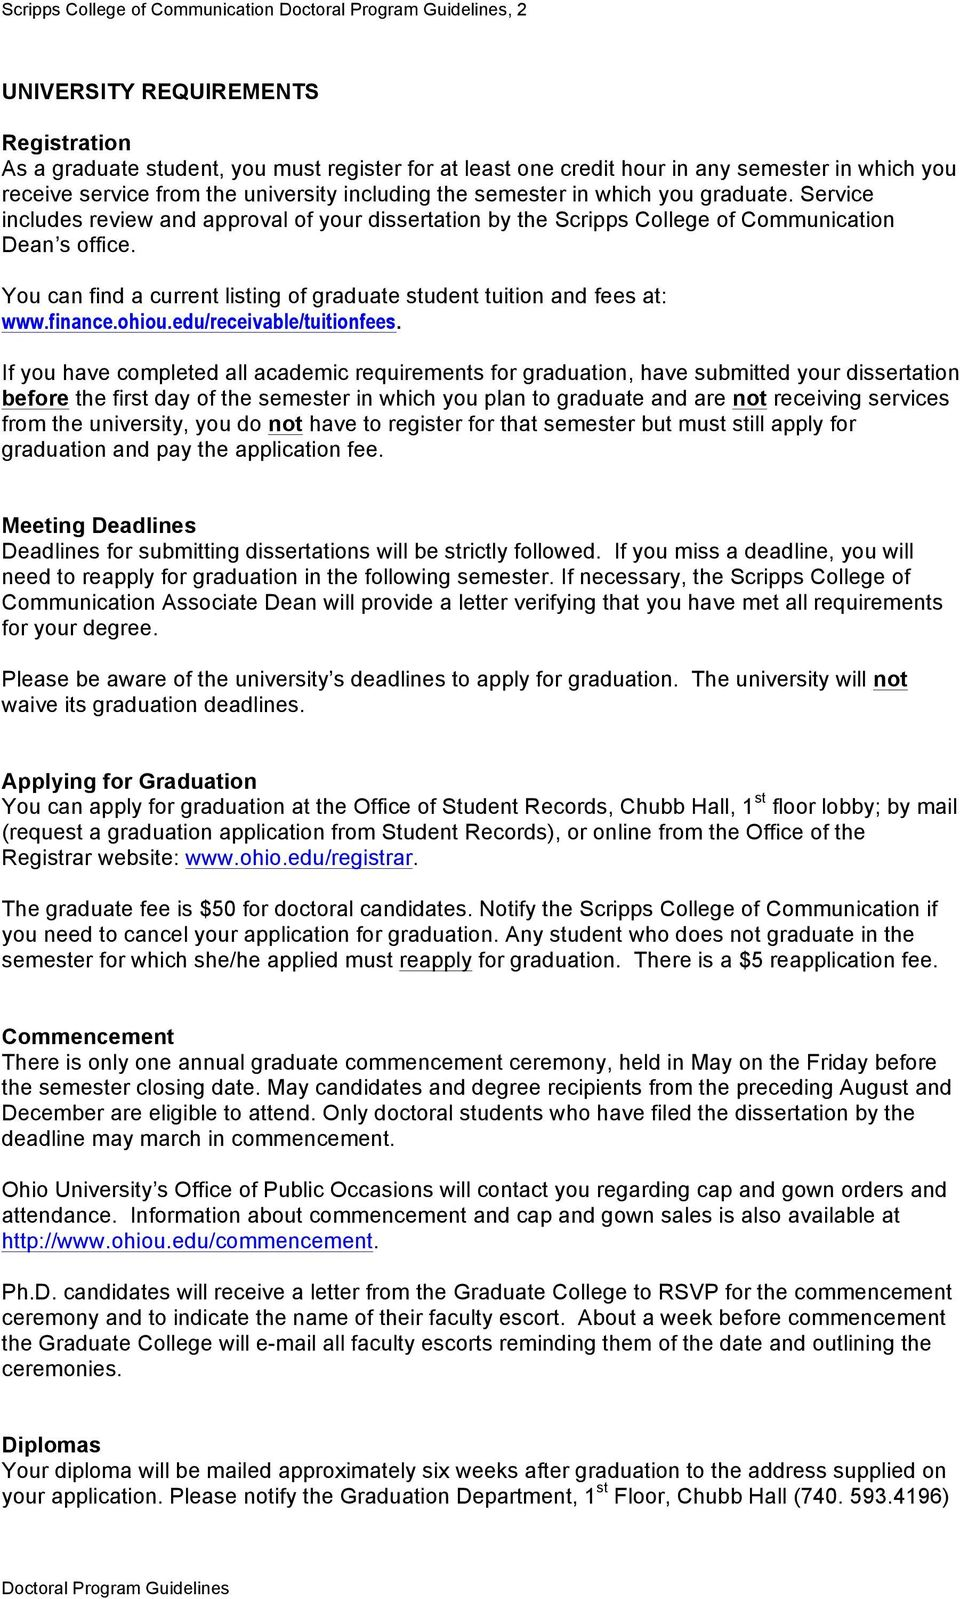 Thesis/Dissertation Instruction Packet